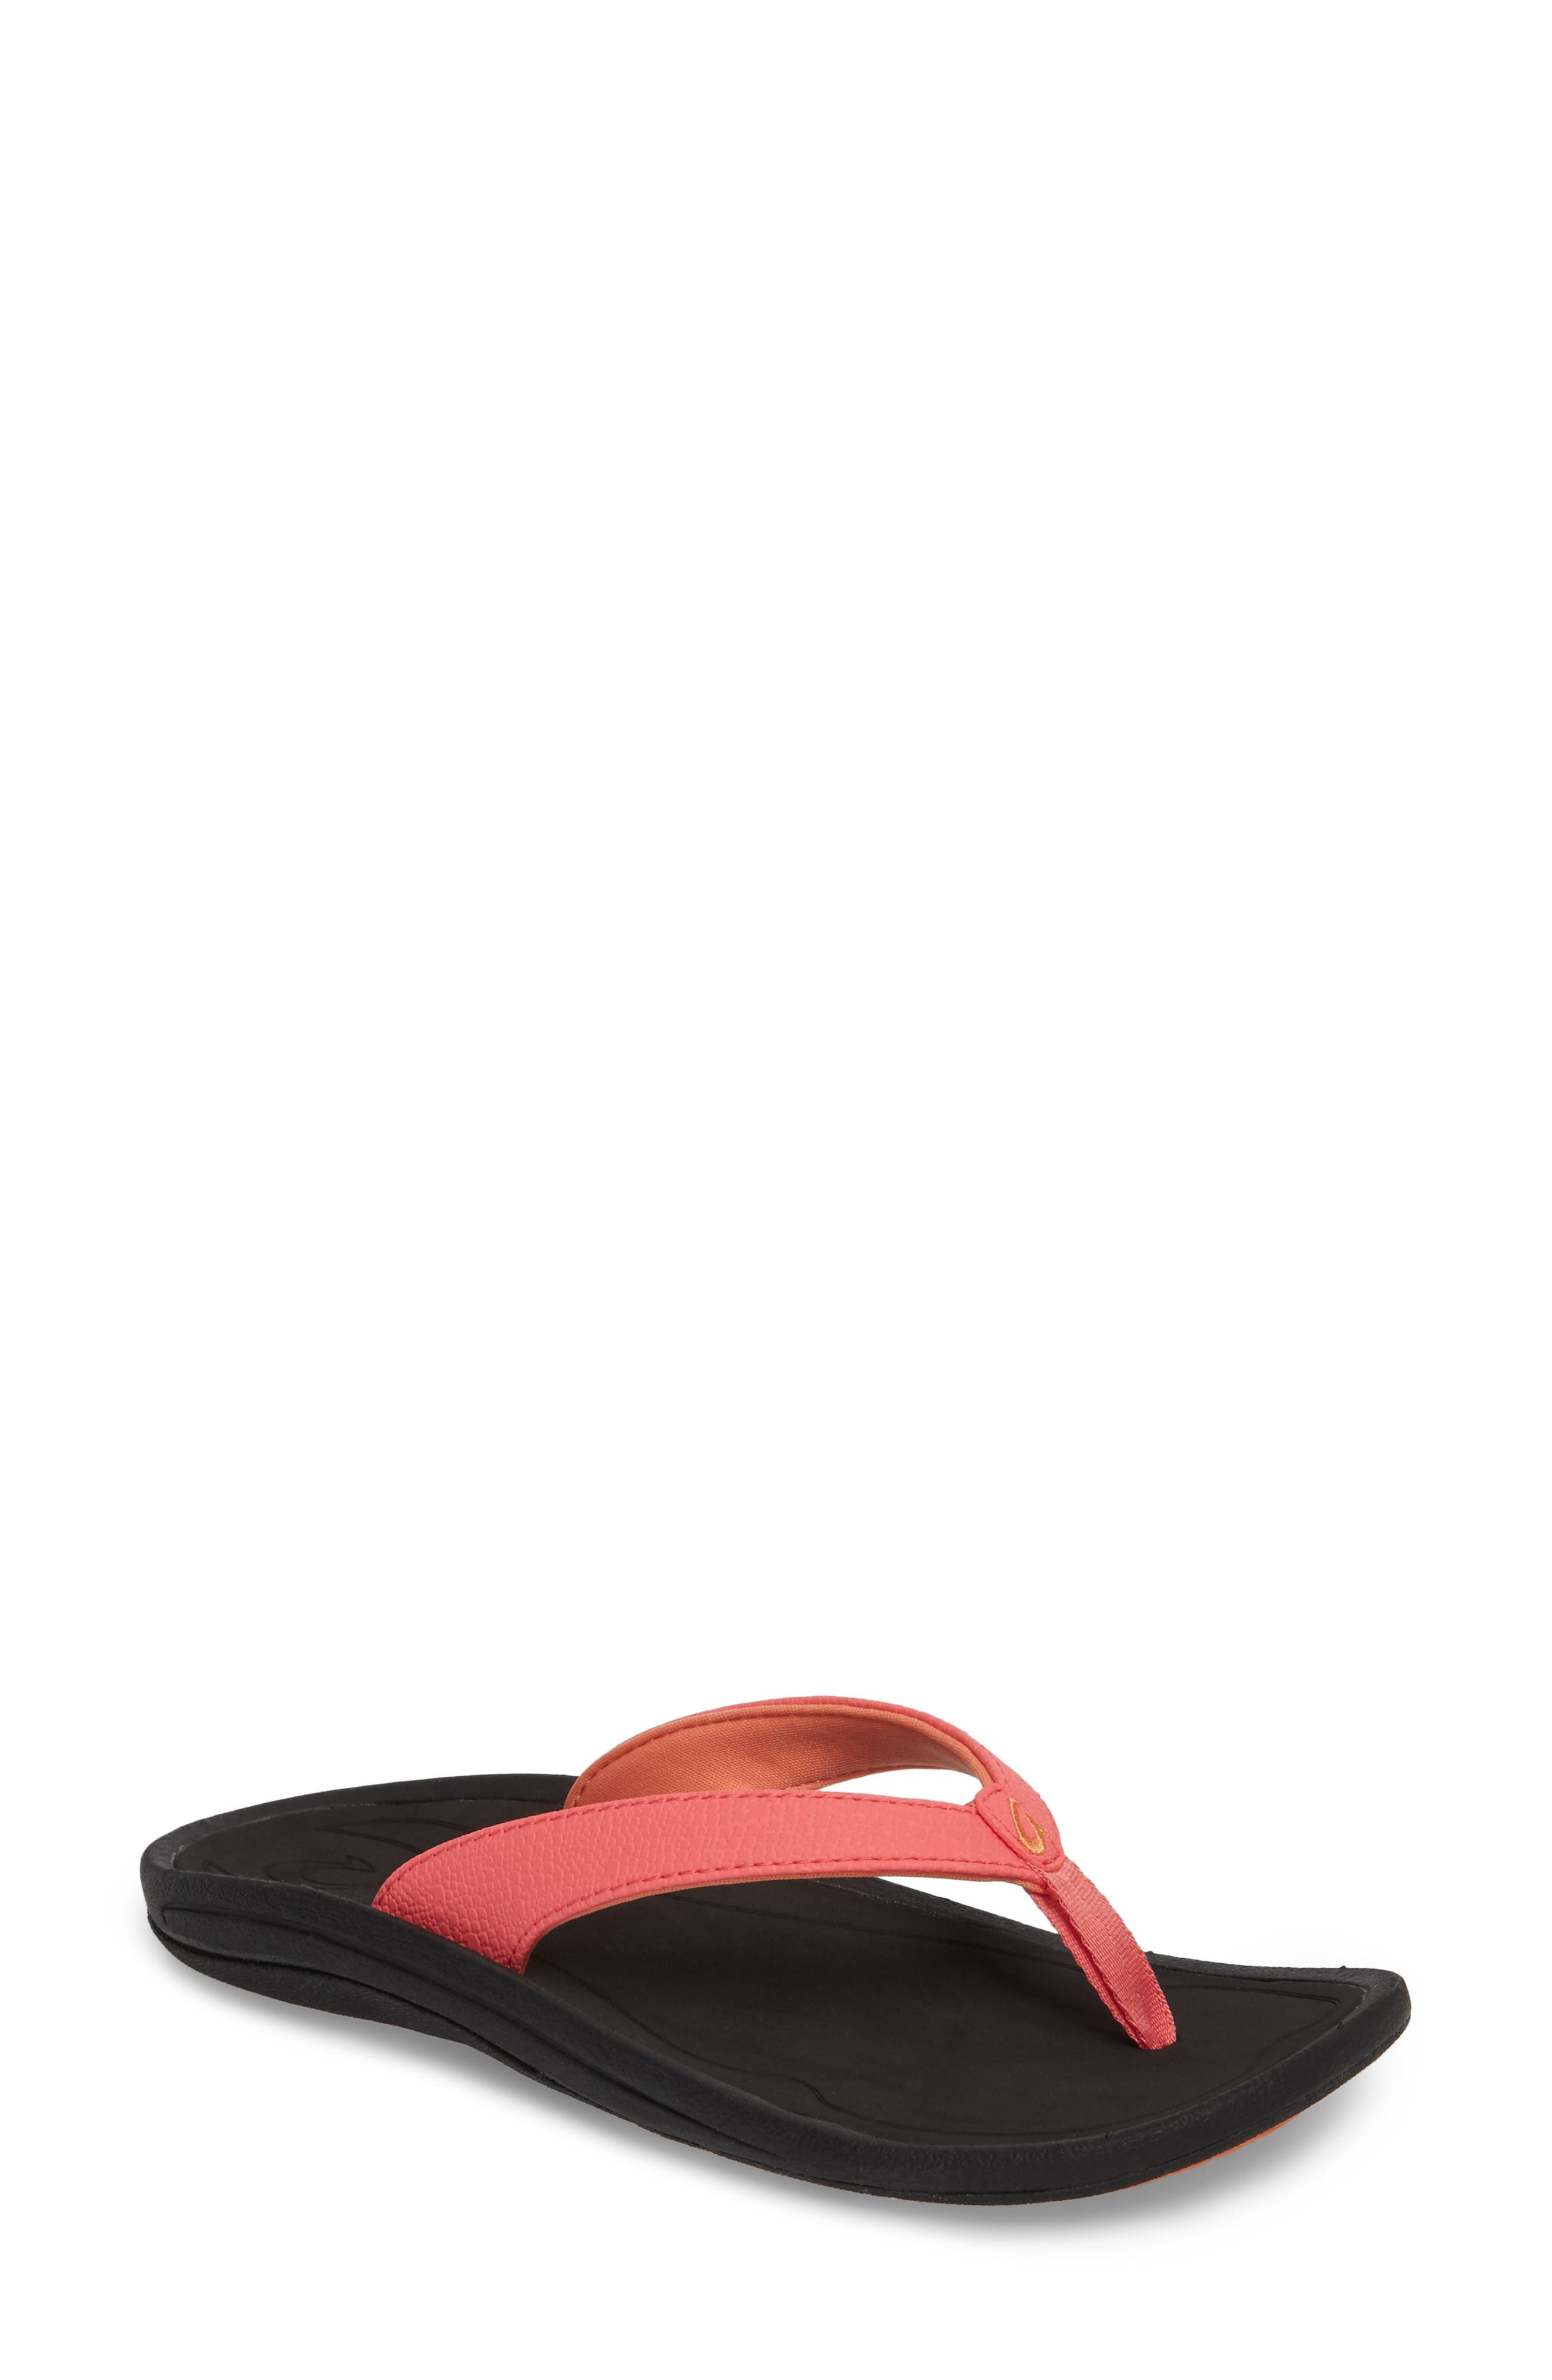 'Kulapa Kai' Thong Sandal,                             Main thumbnail 1, color,                             Guava Jelly/ Black Faux